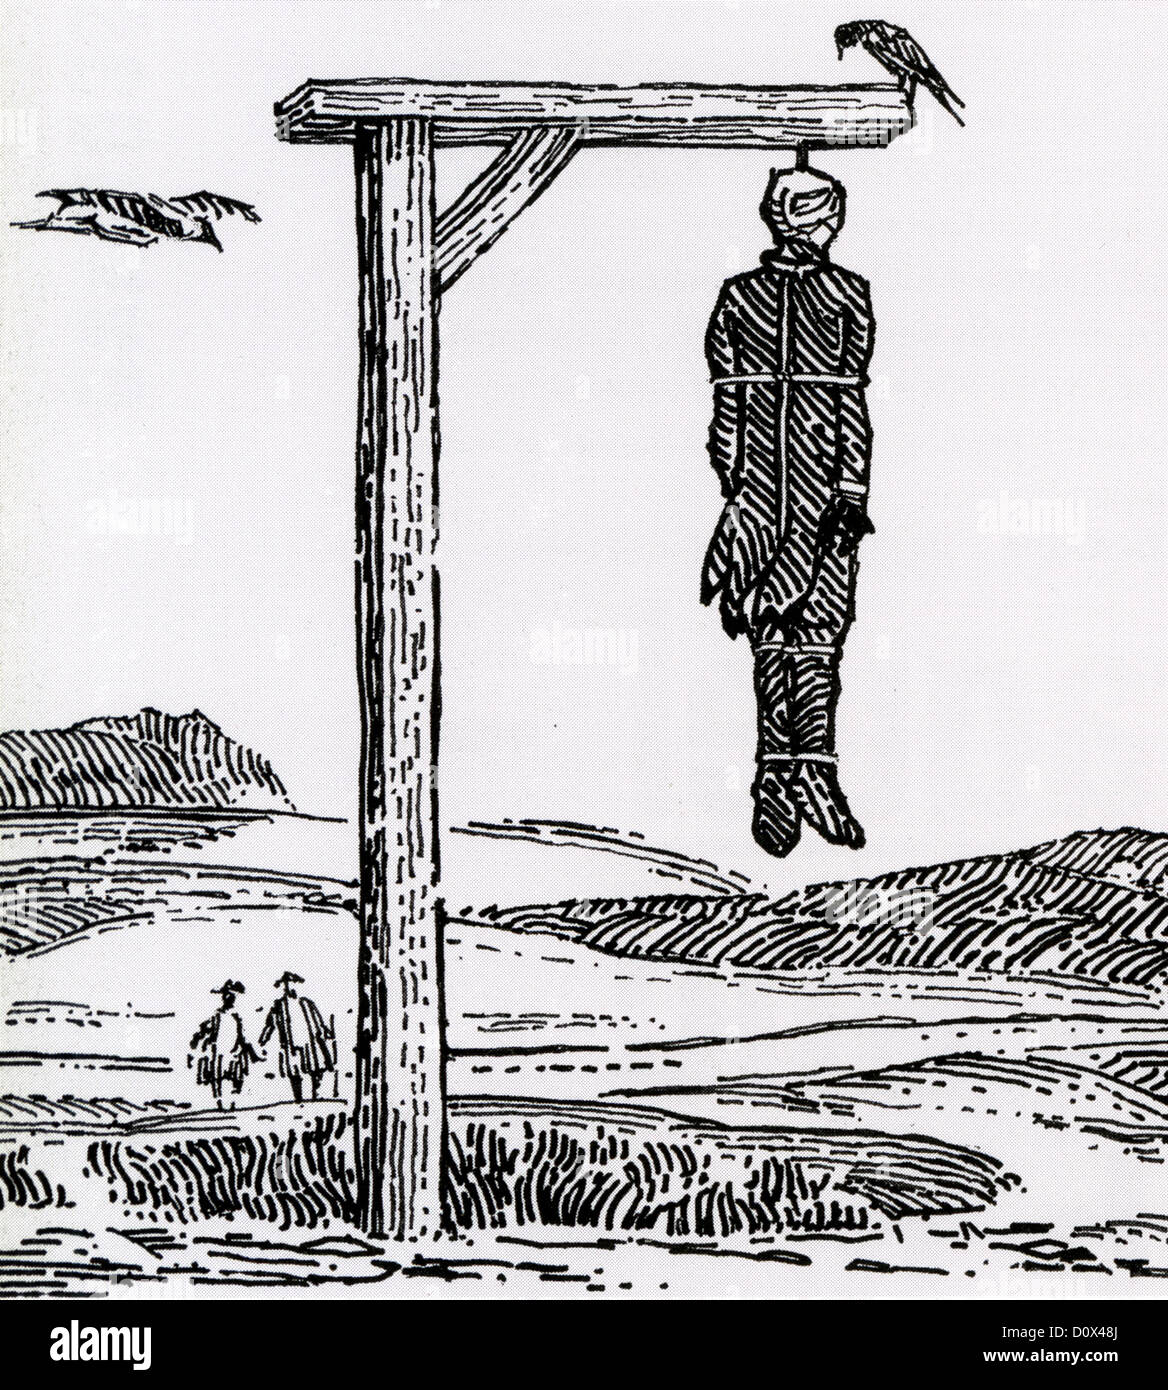 GALLOWS in a mid-eighteenth century woodcut - Stock Image